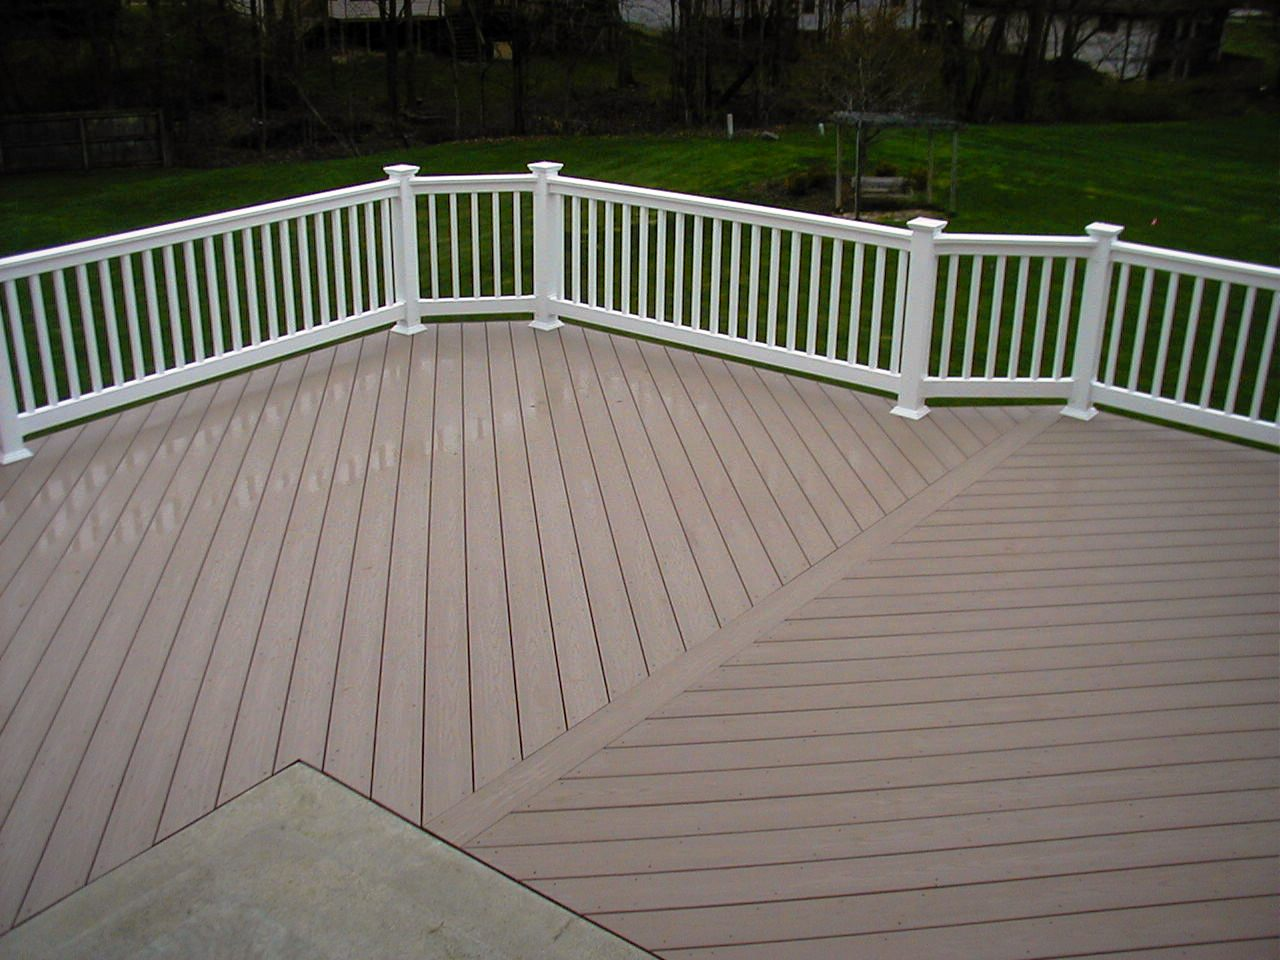 Fake Wood PVC Decking